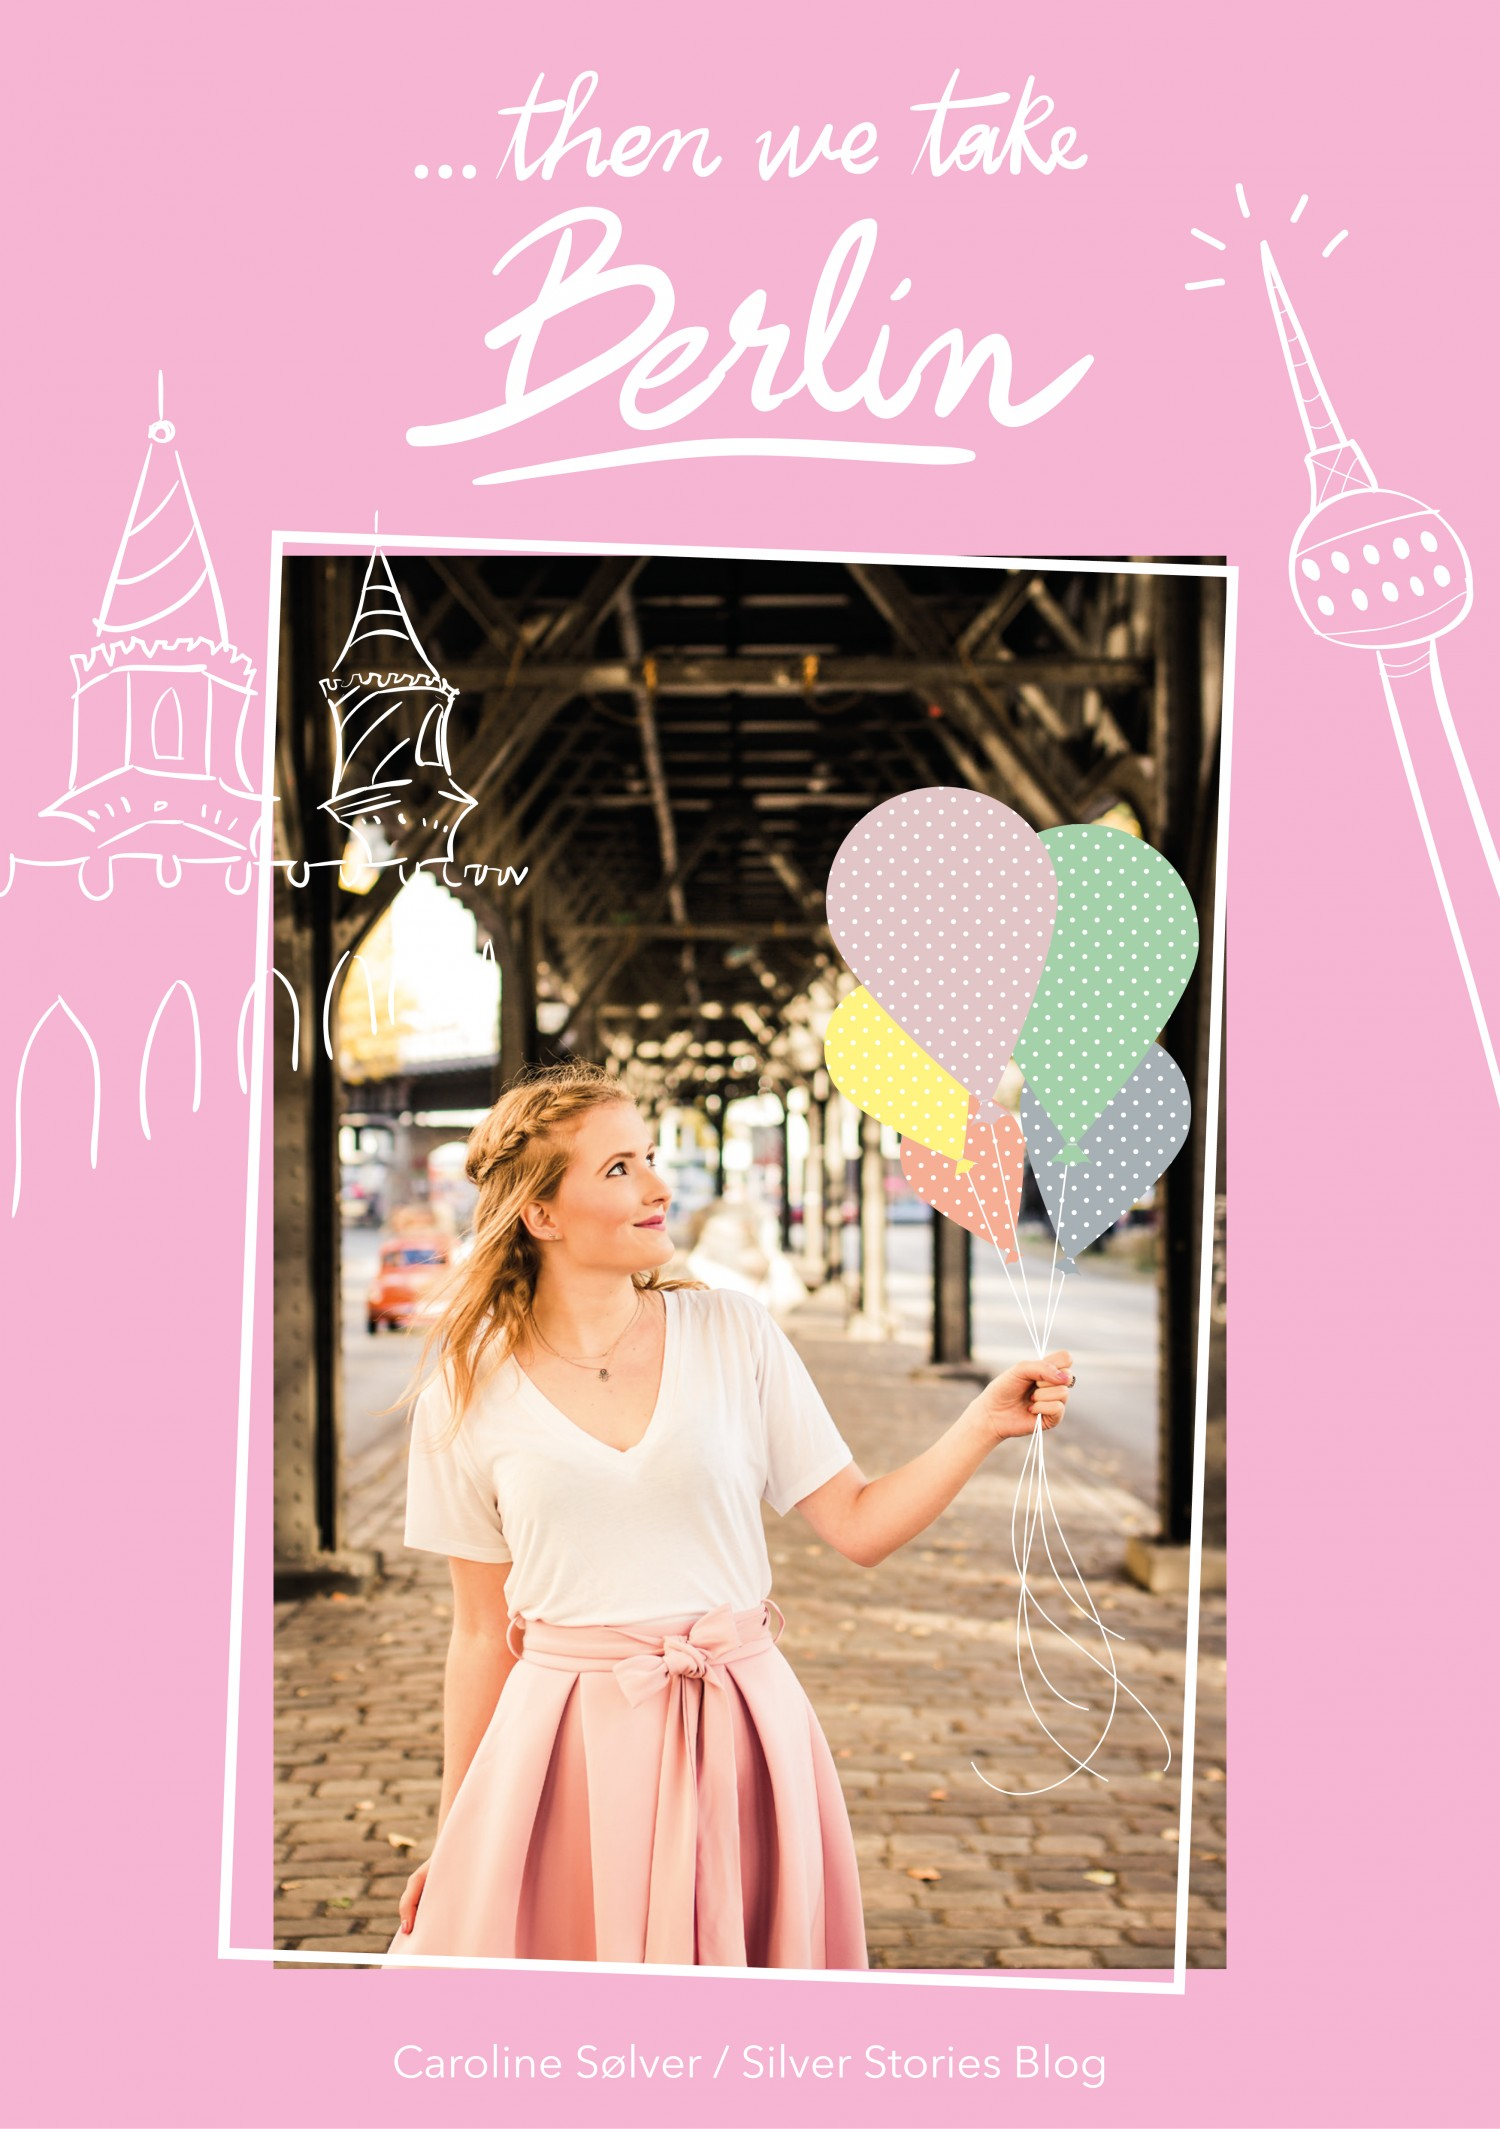 Then we take Berlin guidebook